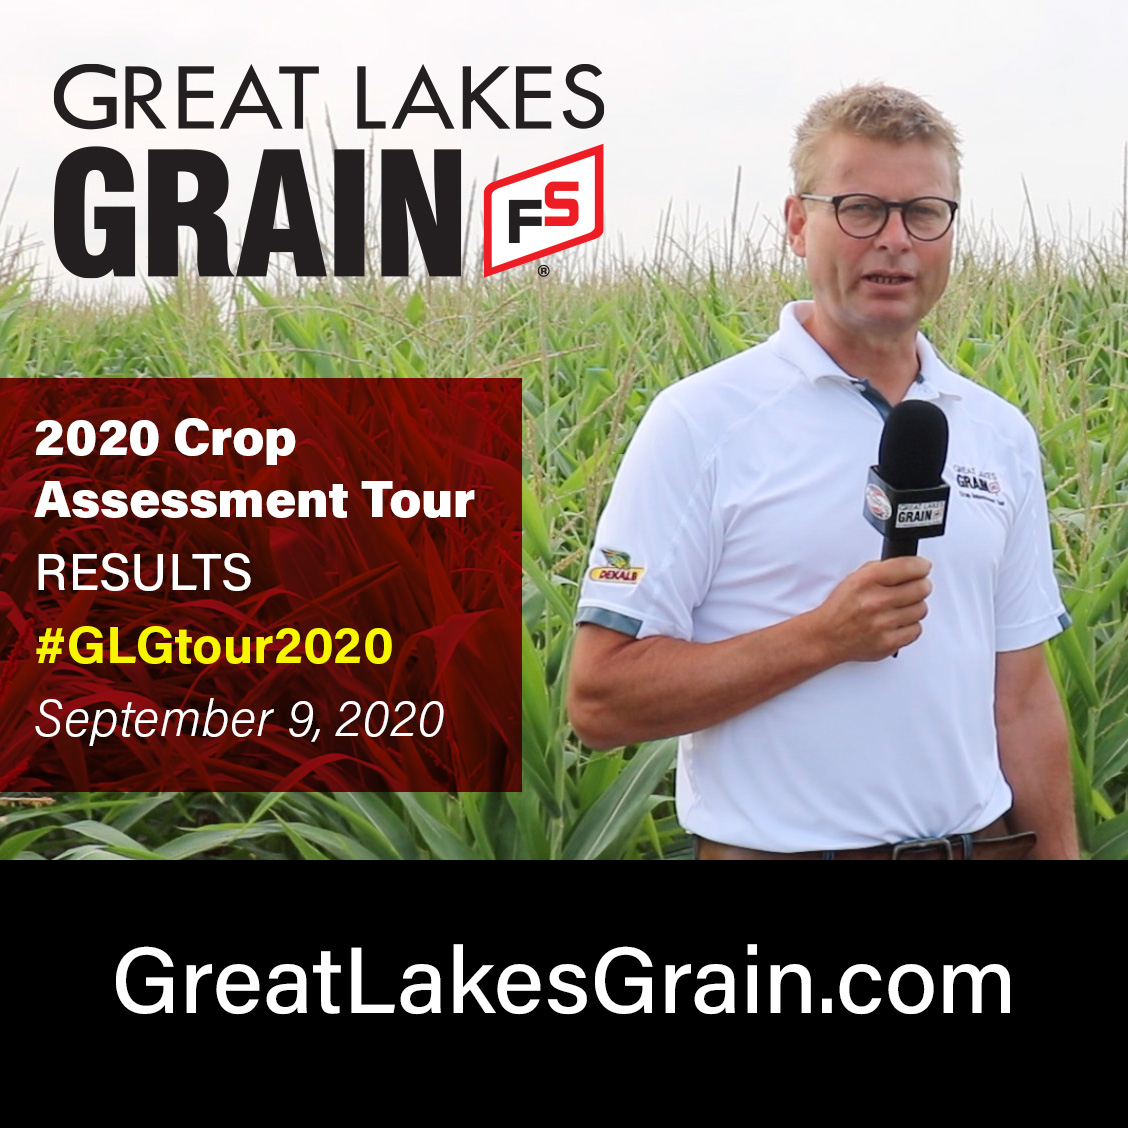 Final yield and crop quality report for 2020 Crop Assessment Tour